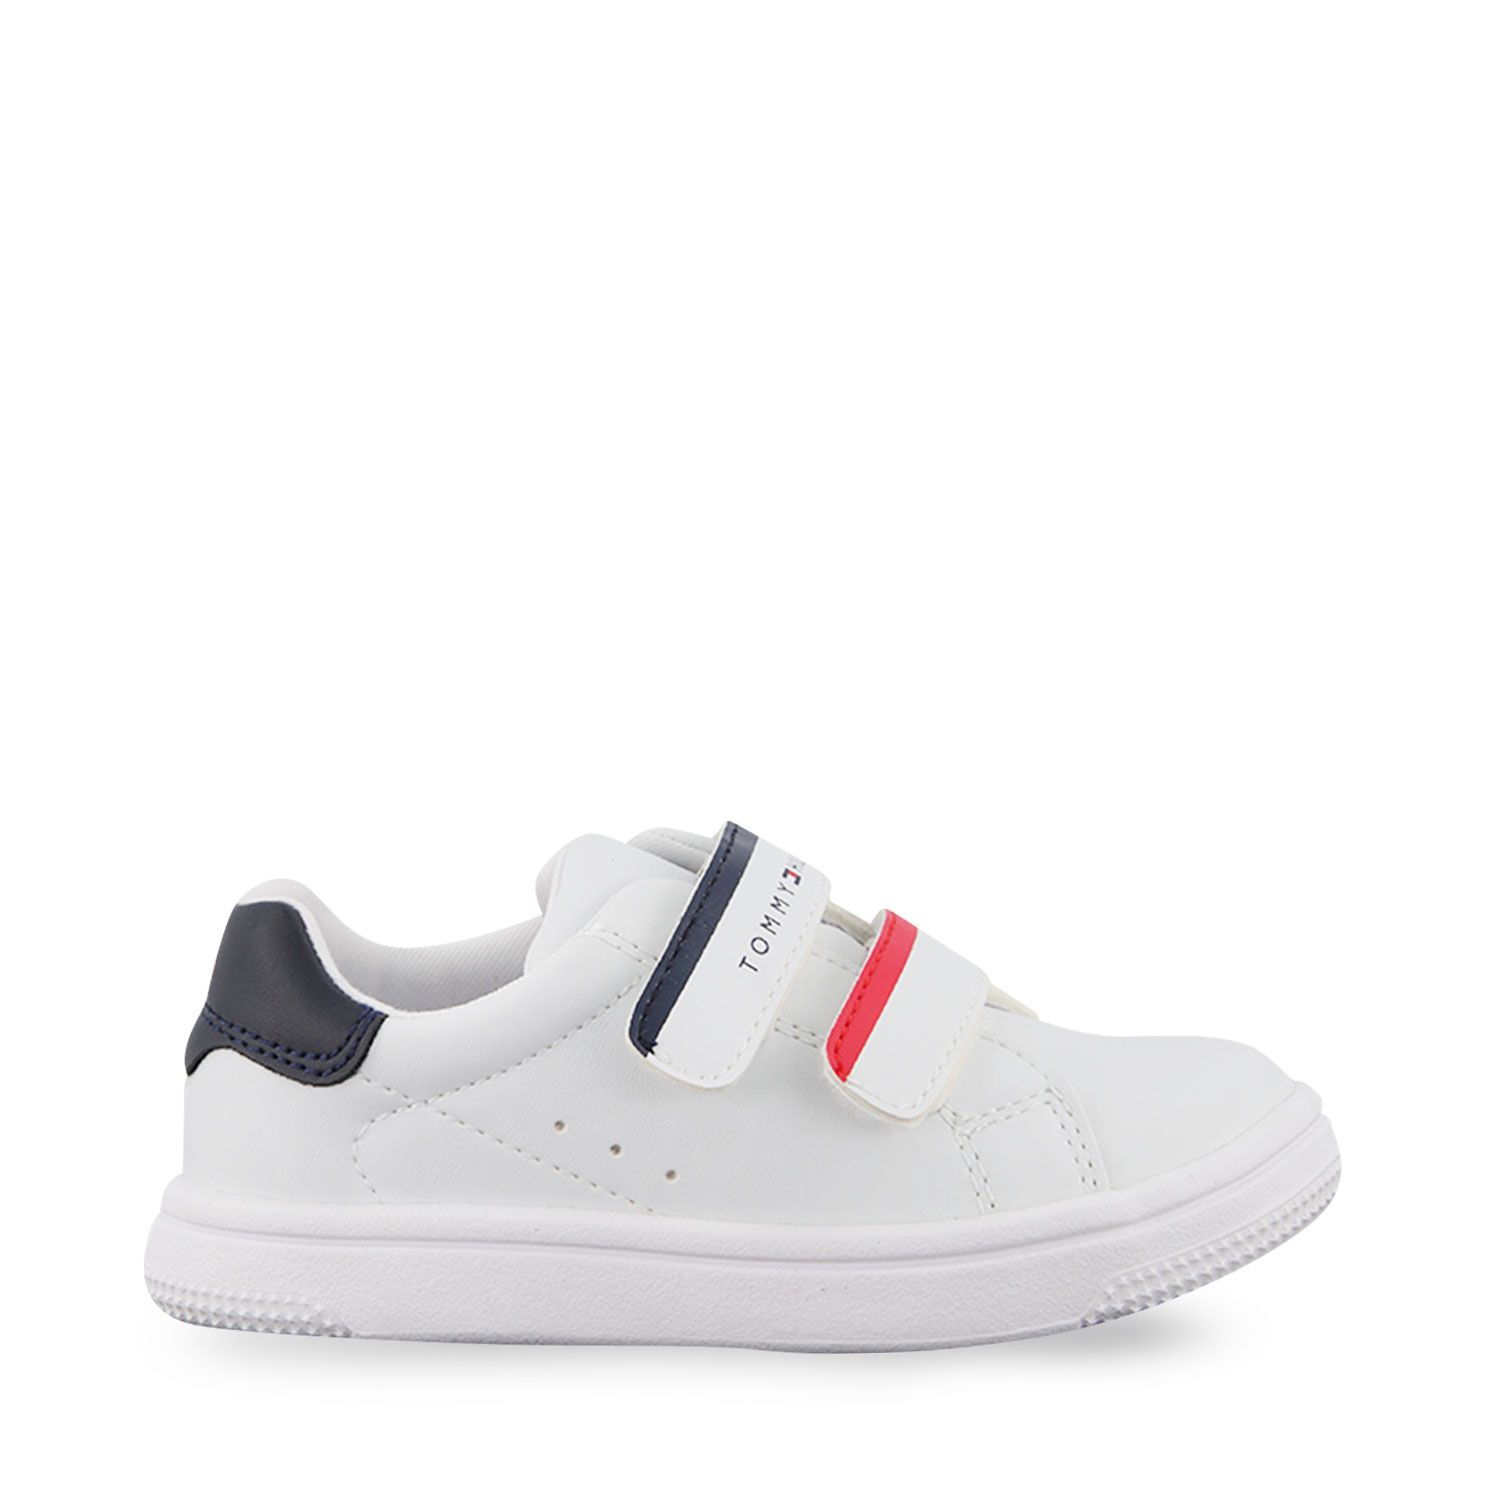 Picture of Tommy Hilfiger 31079 kids sneakers white